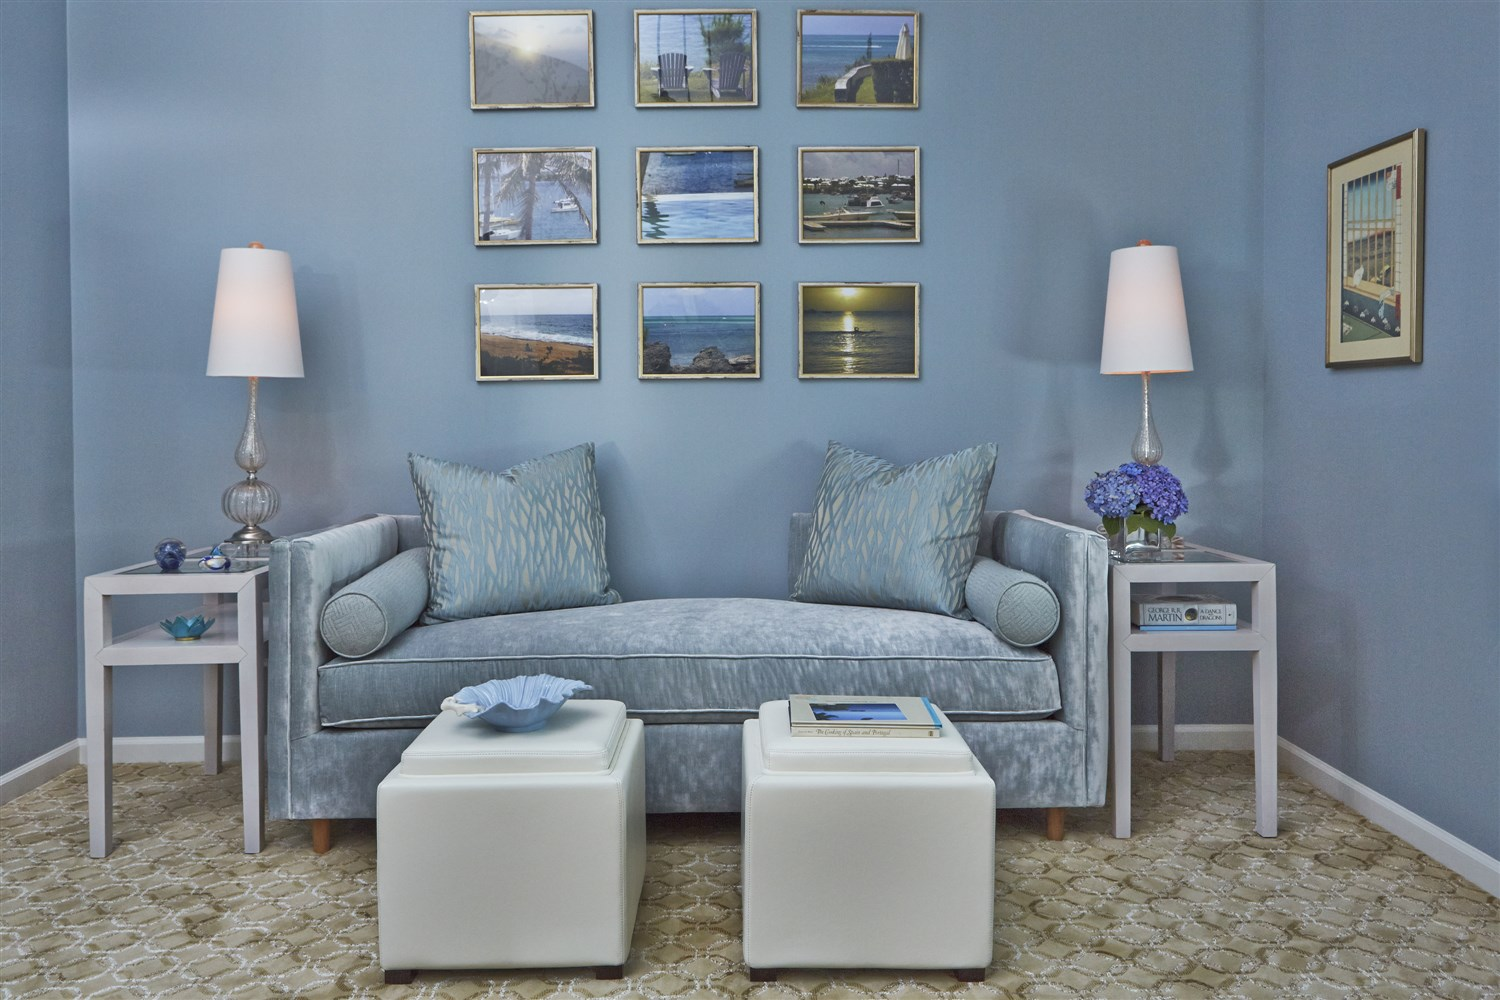 Cozy light blue painted living room